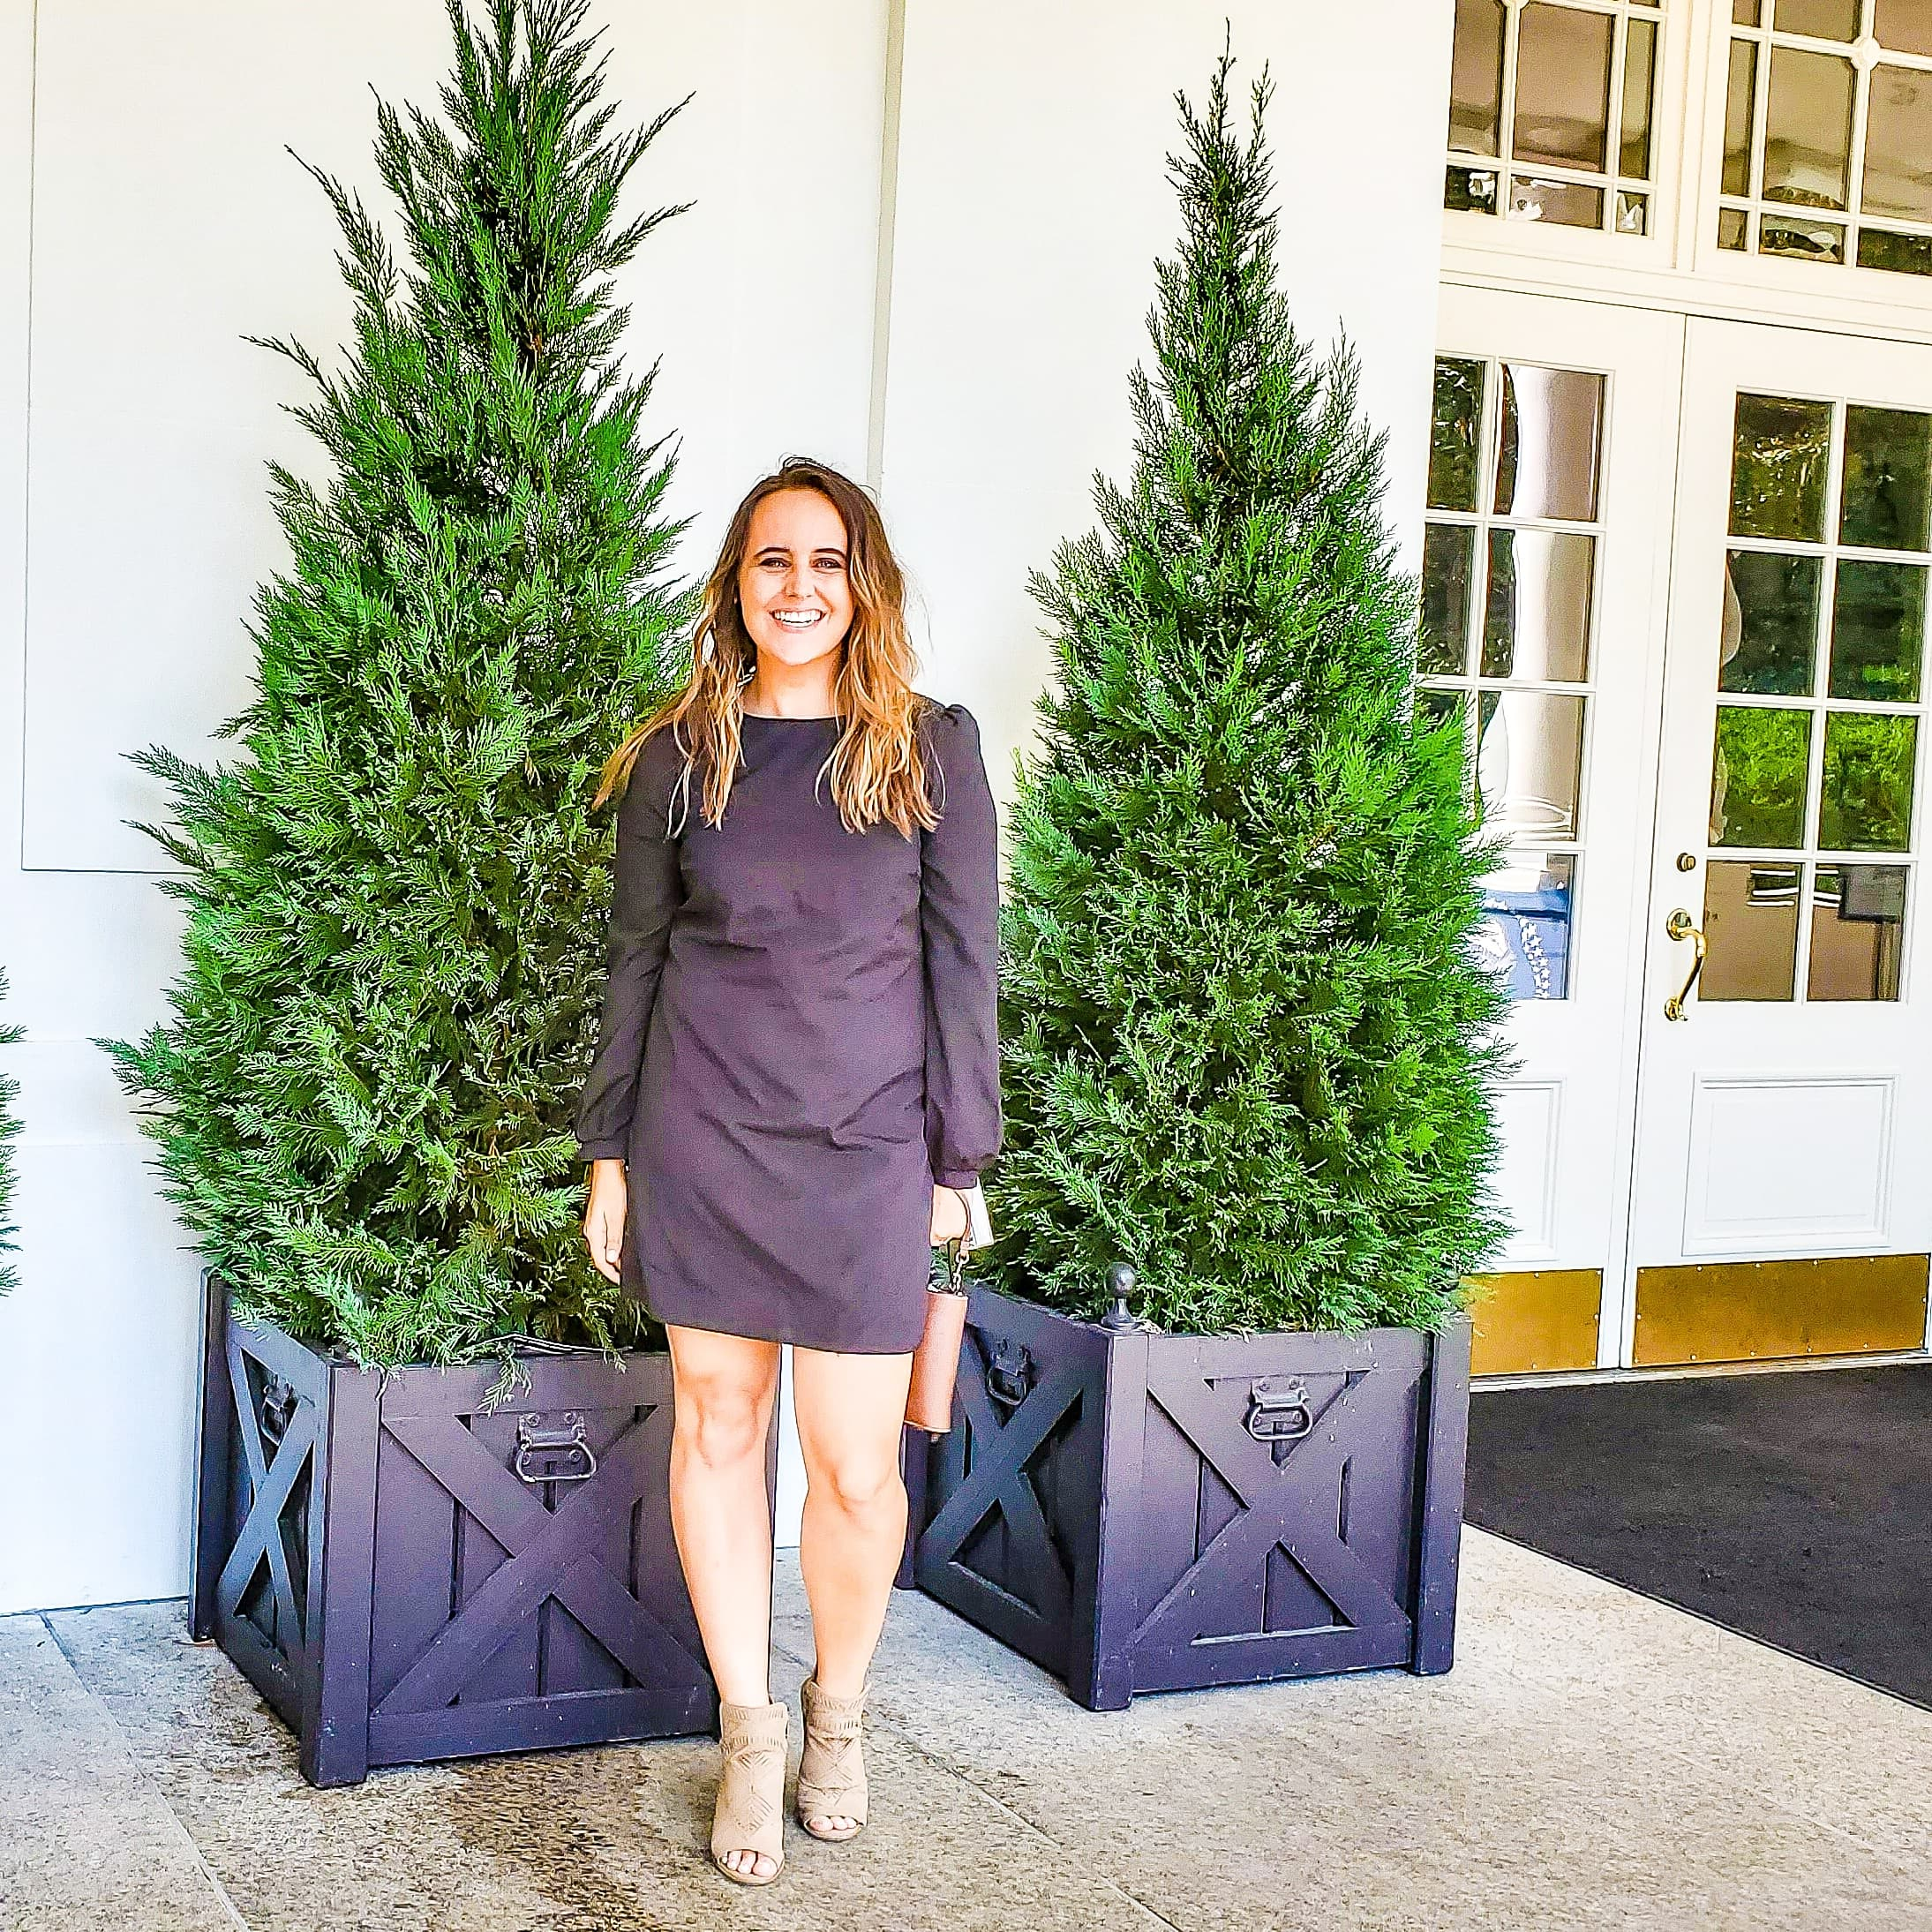 Inside D.C. – An In Depth Tour of the White House, Capital and VP's Office